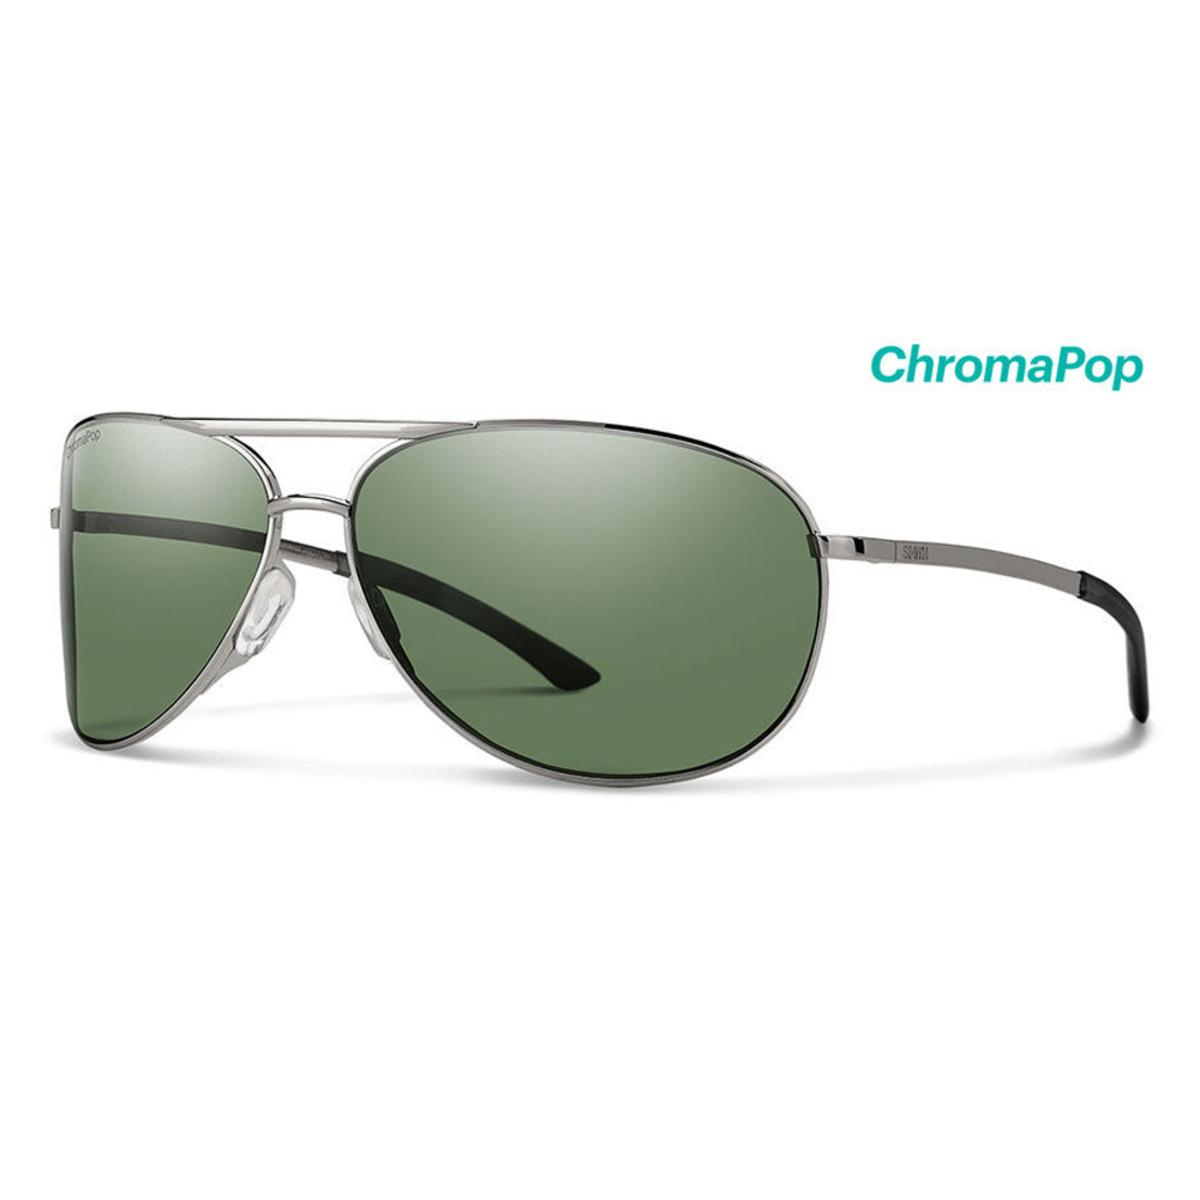 Smith Optics Serpico 2 Sunglasses Chromapop Polarized Gray Green - Gunmetal Frame